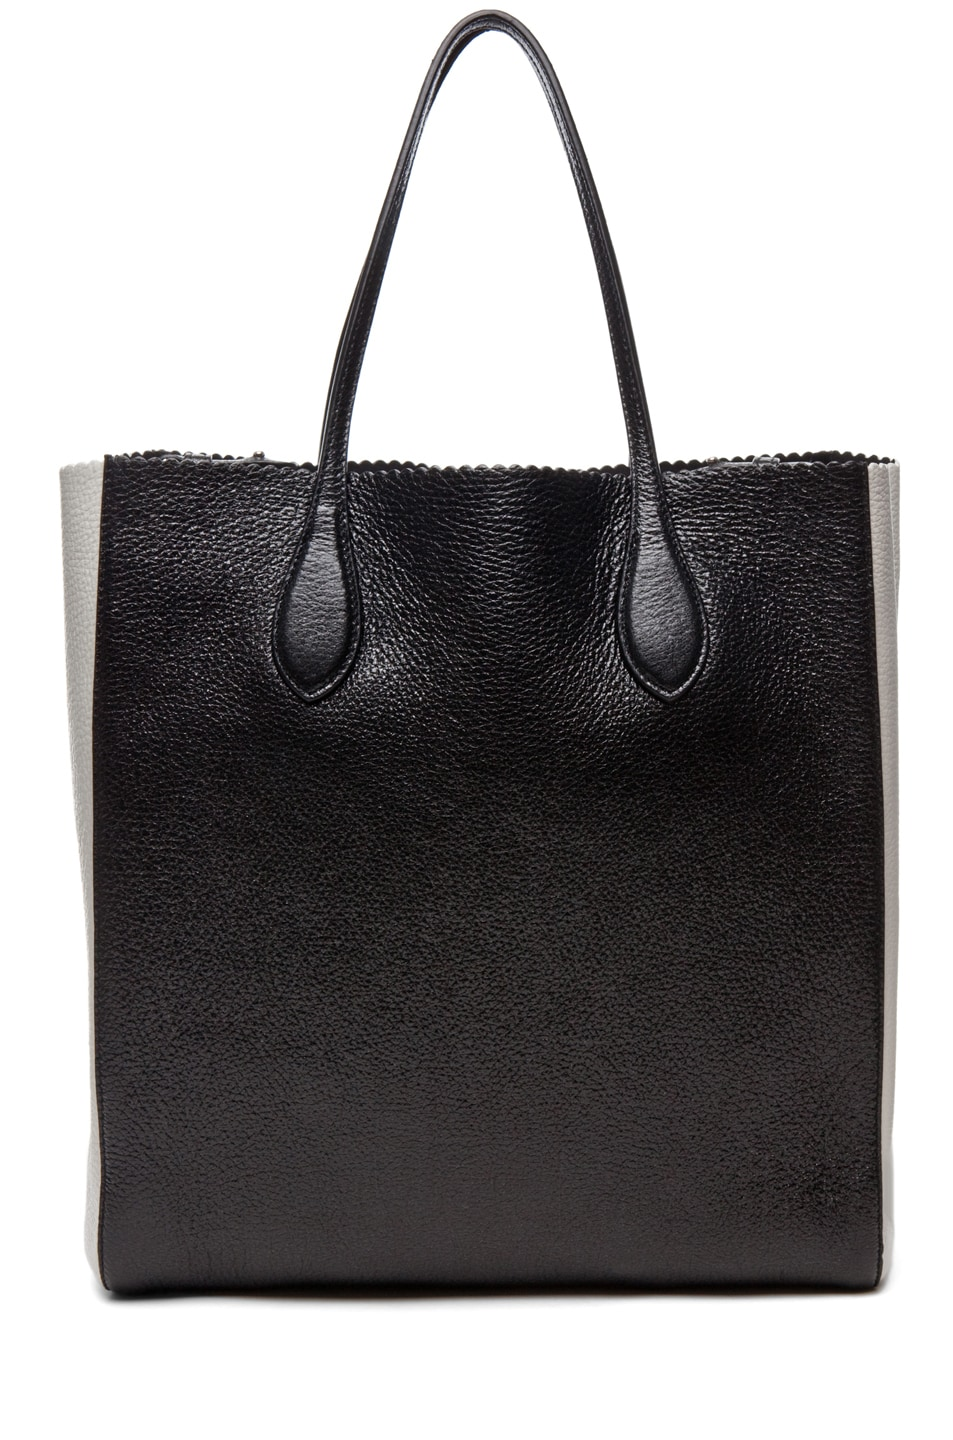 Image 2 of ROCHAS Borsa Tote in Black & White